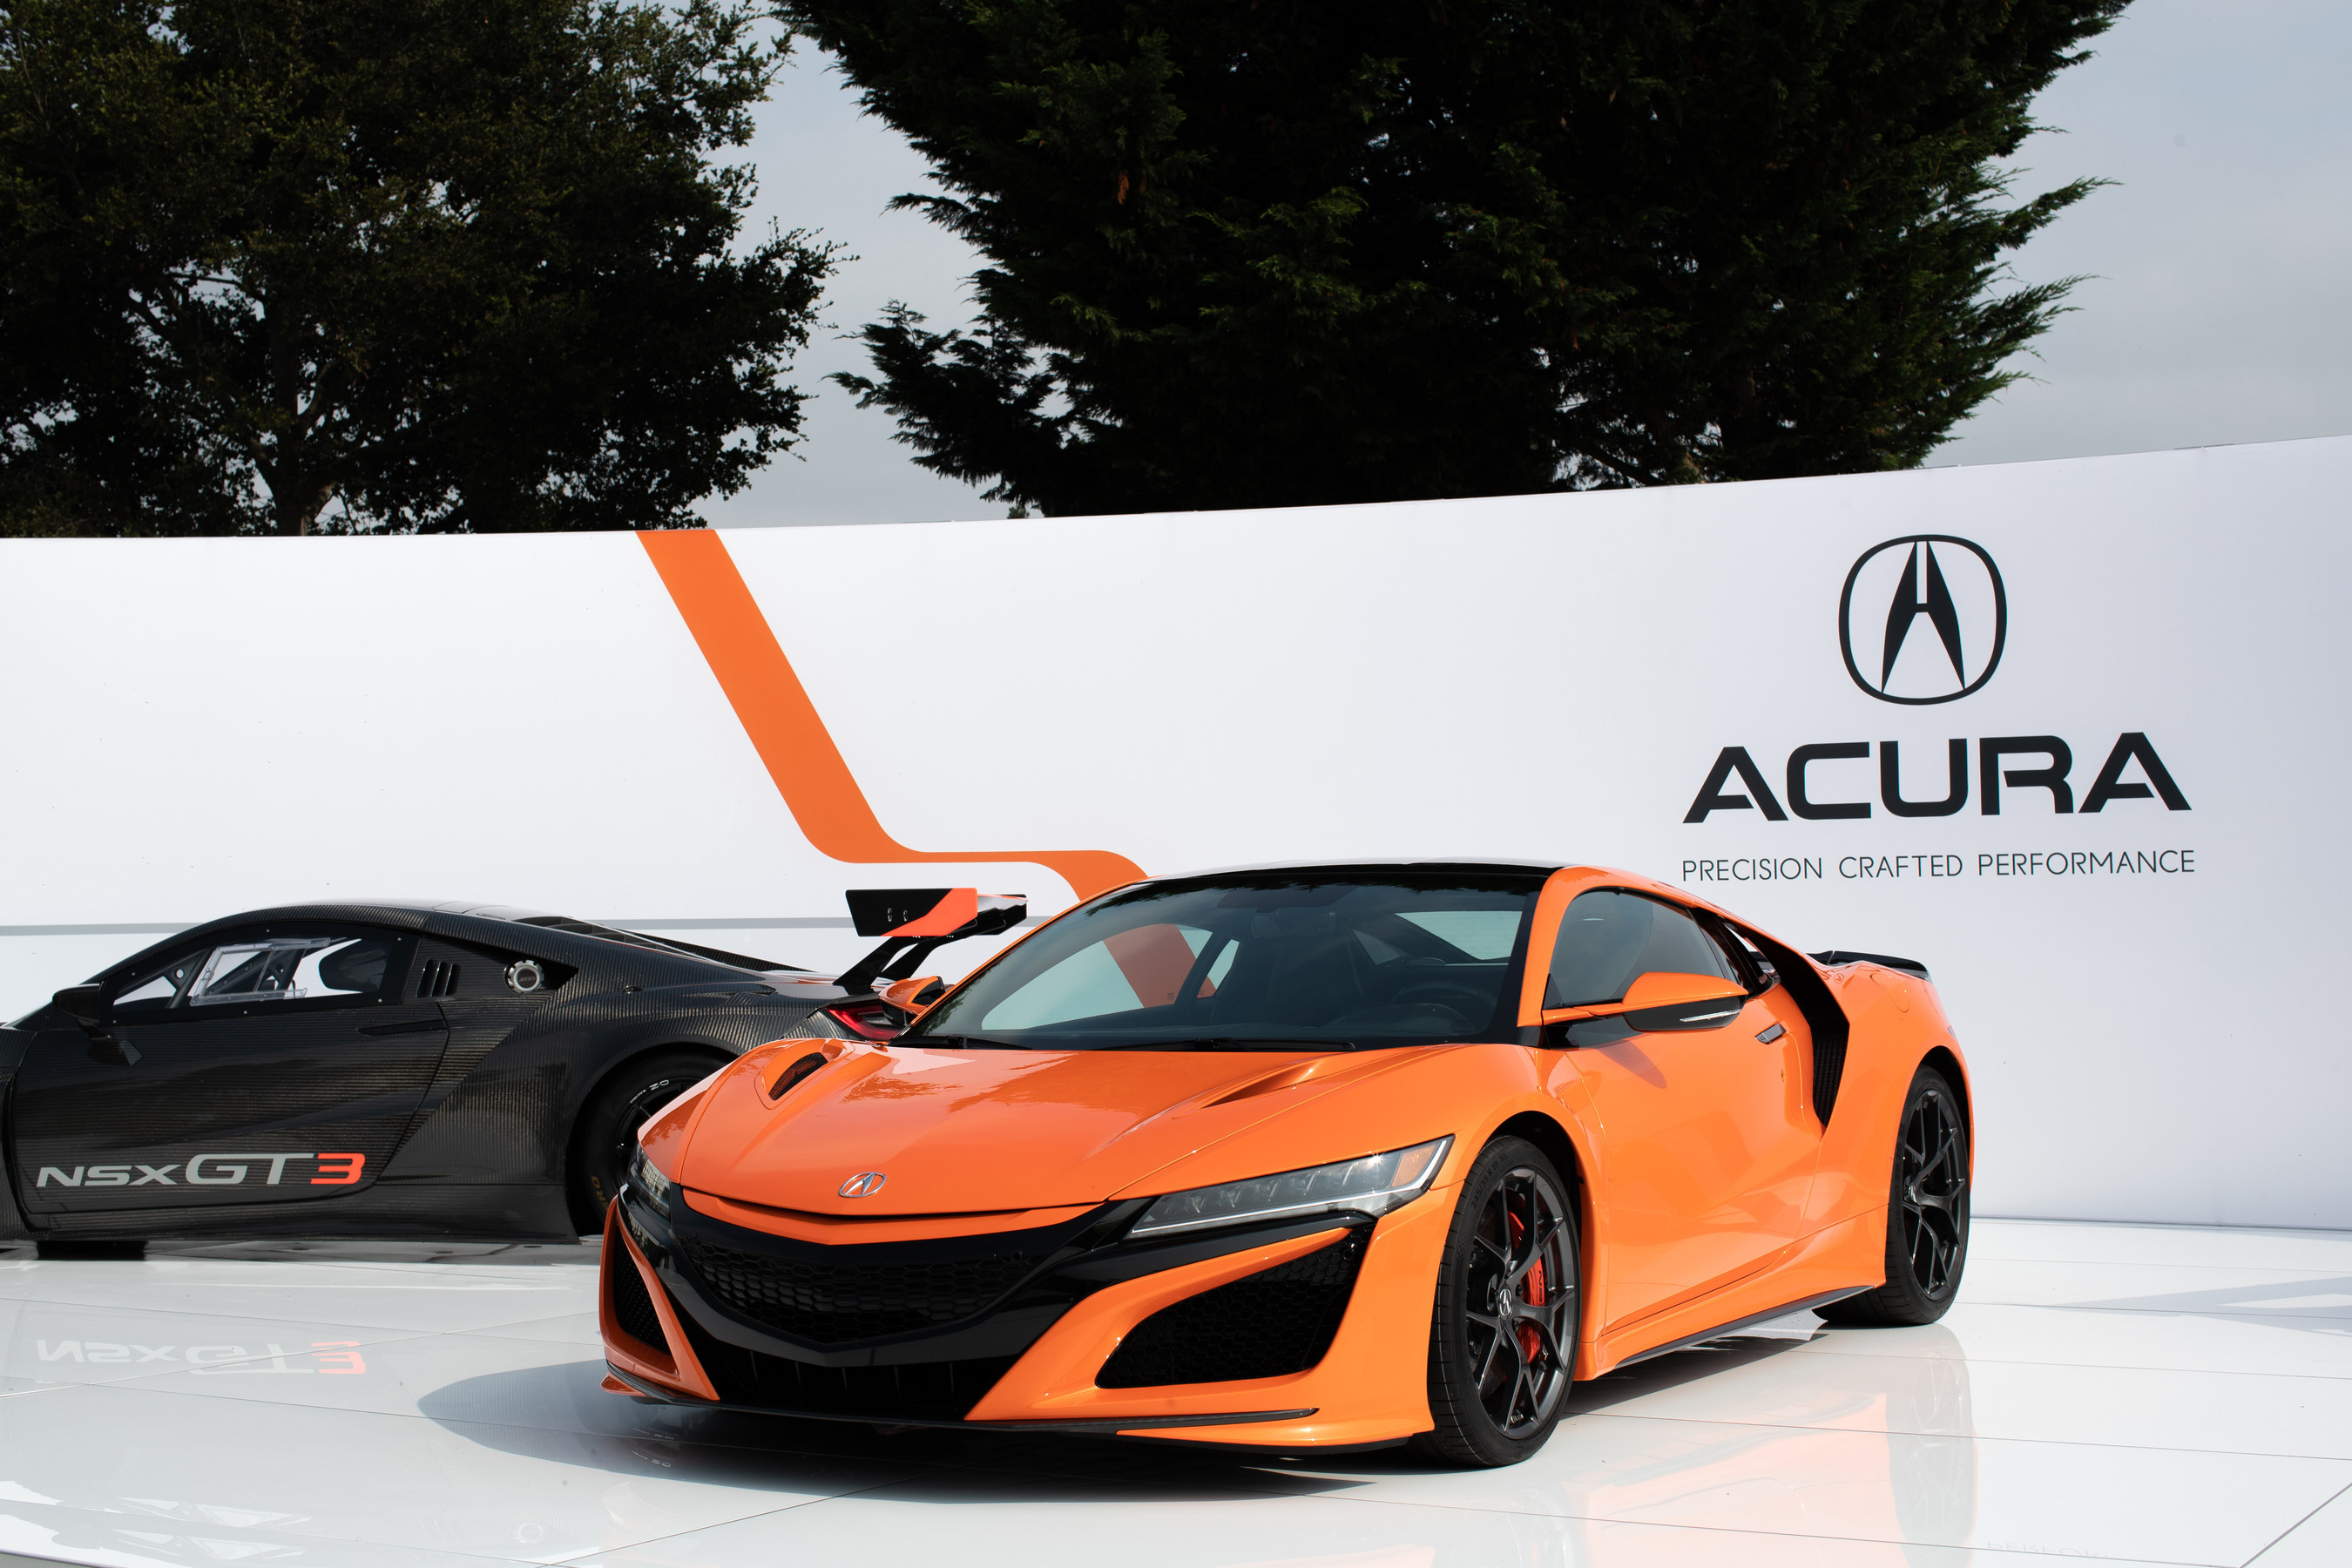 acura takes center stage at monterey car week with global debut of